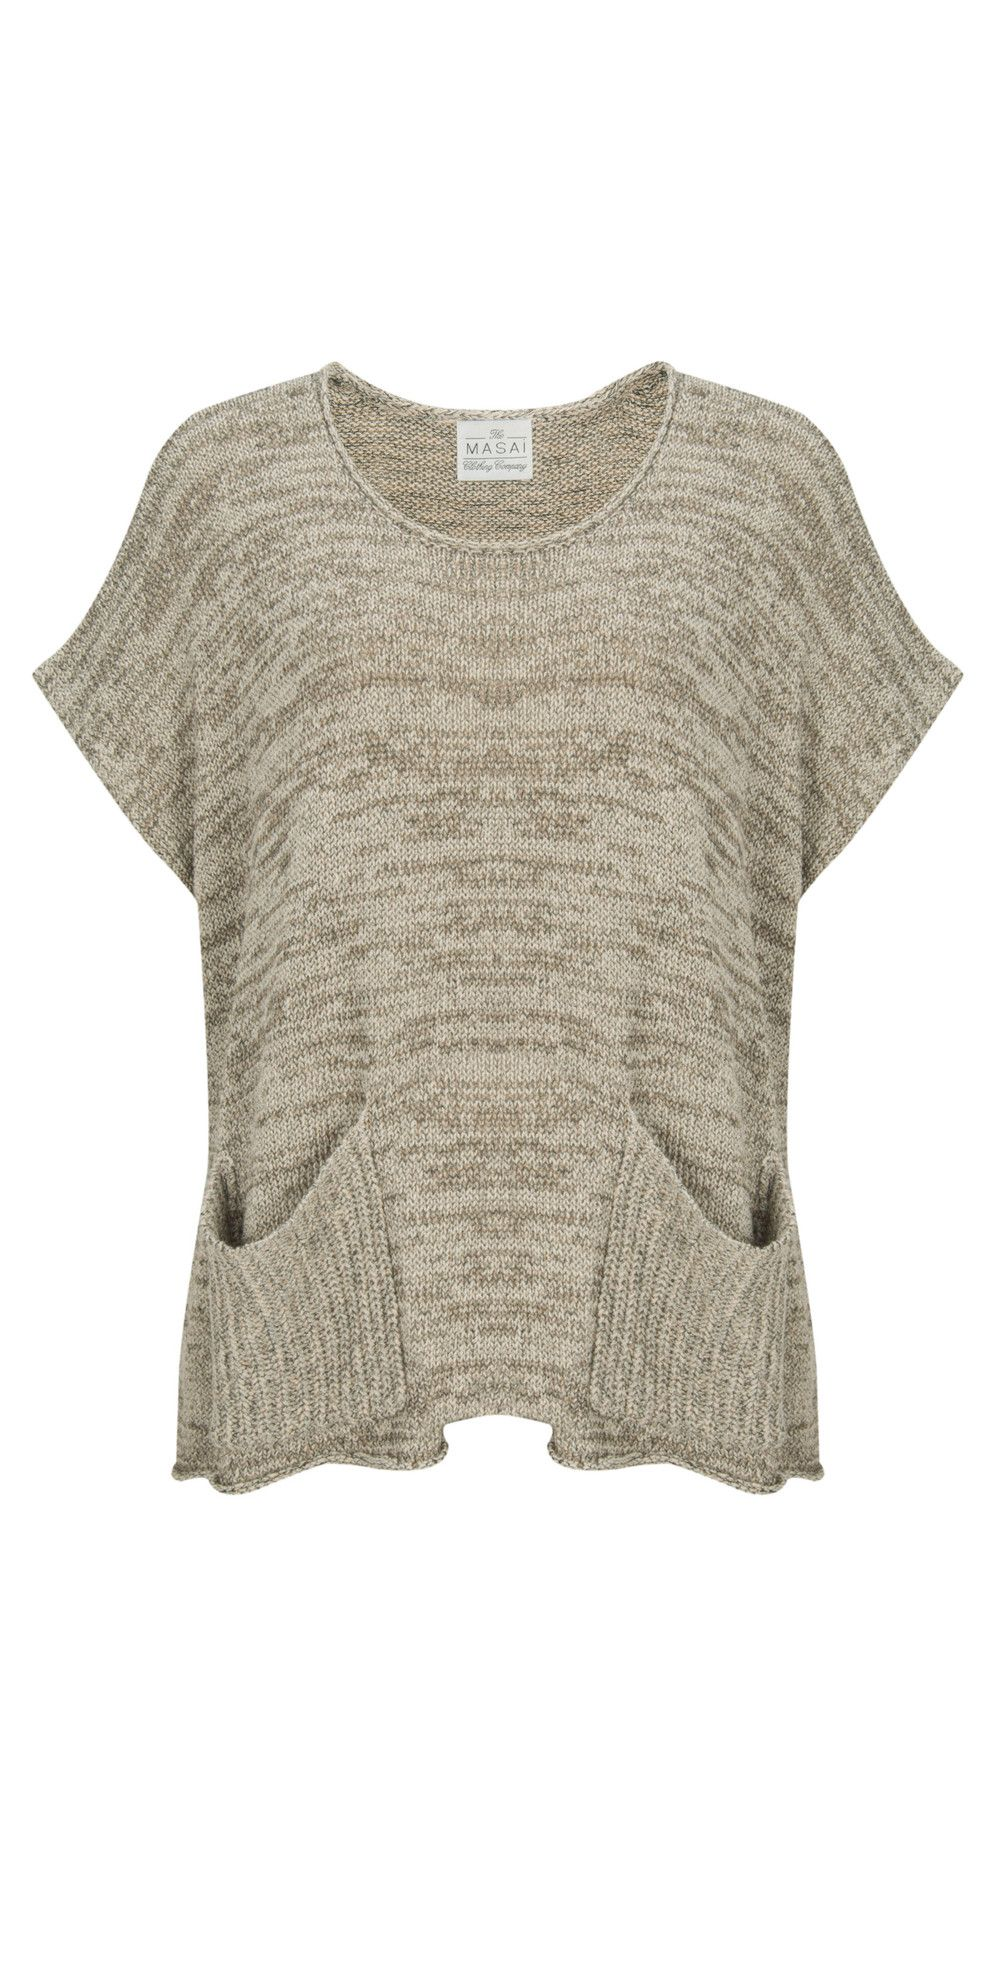 441 nougat Print Farinelli Knitted Top | Masai clothing